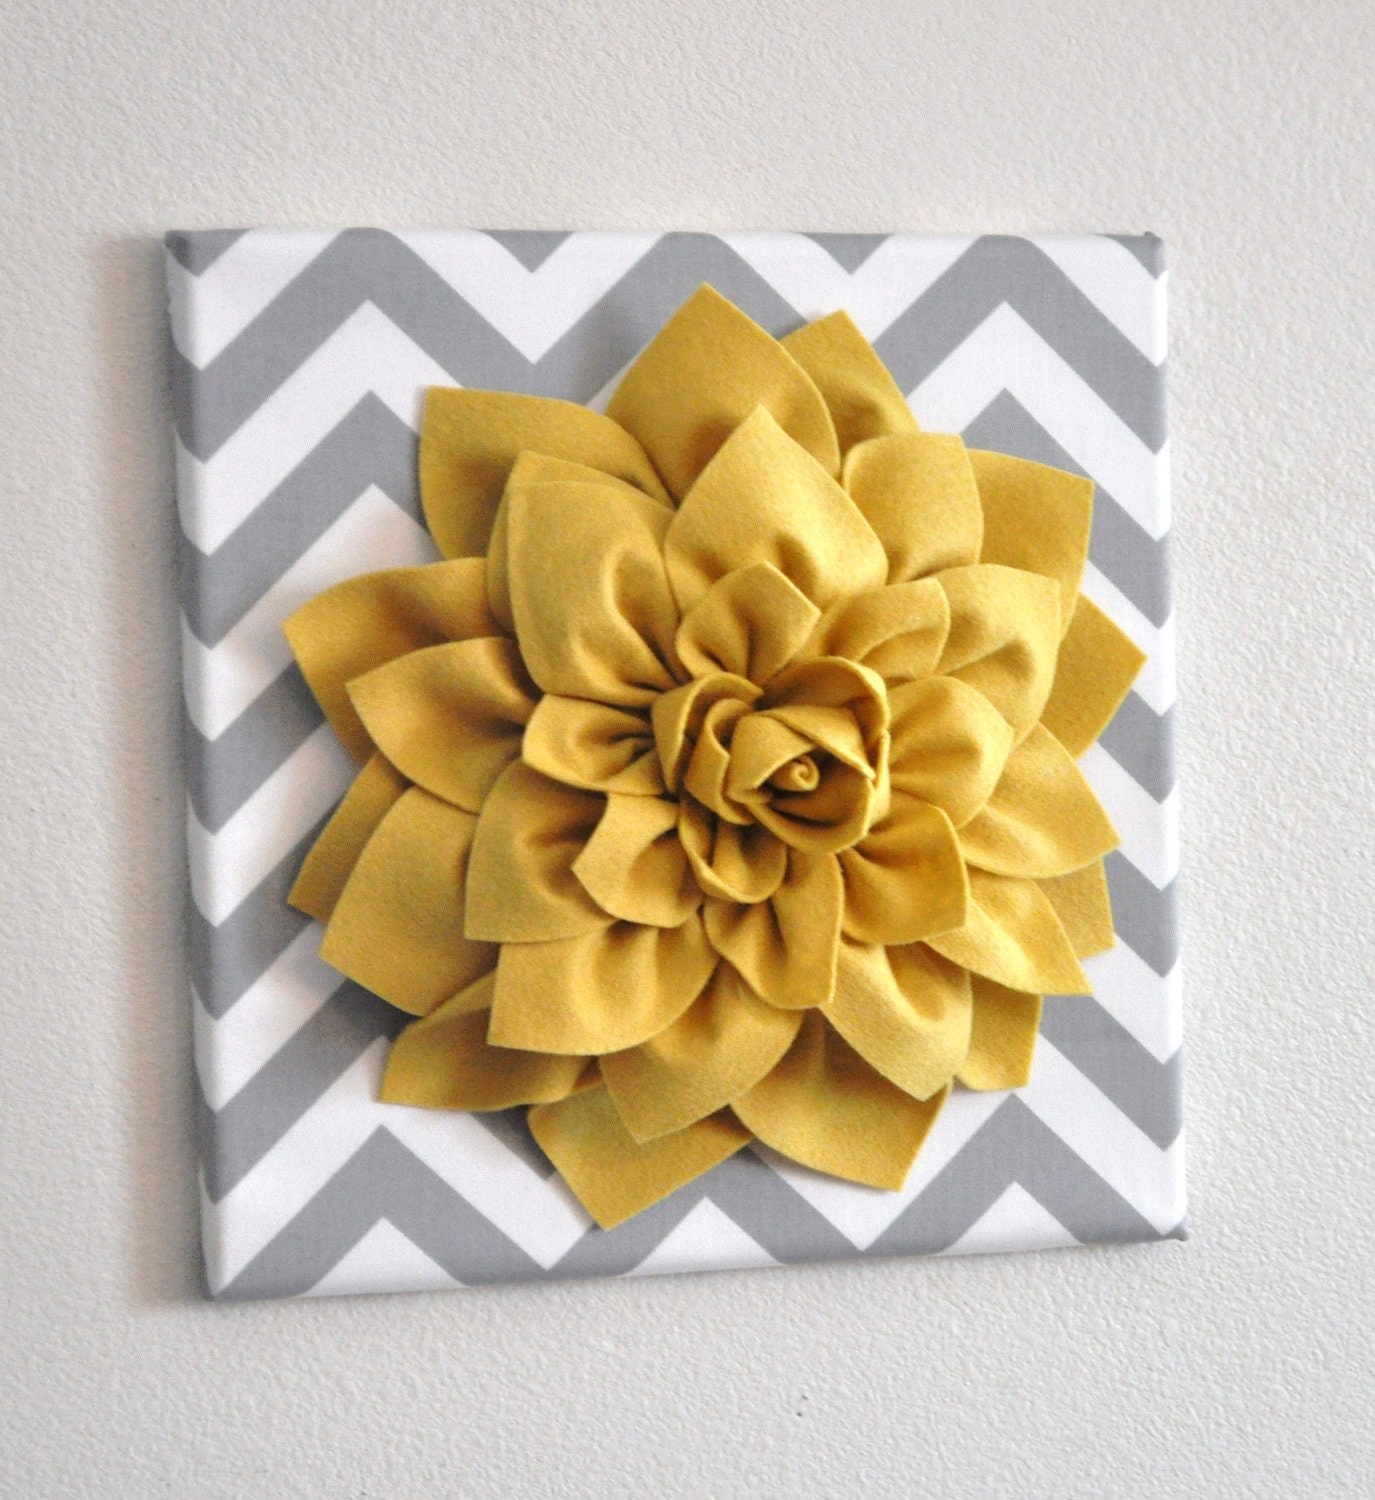 3d Flower Wall Art popular items for 3d wall flower on etsy with wall flowe